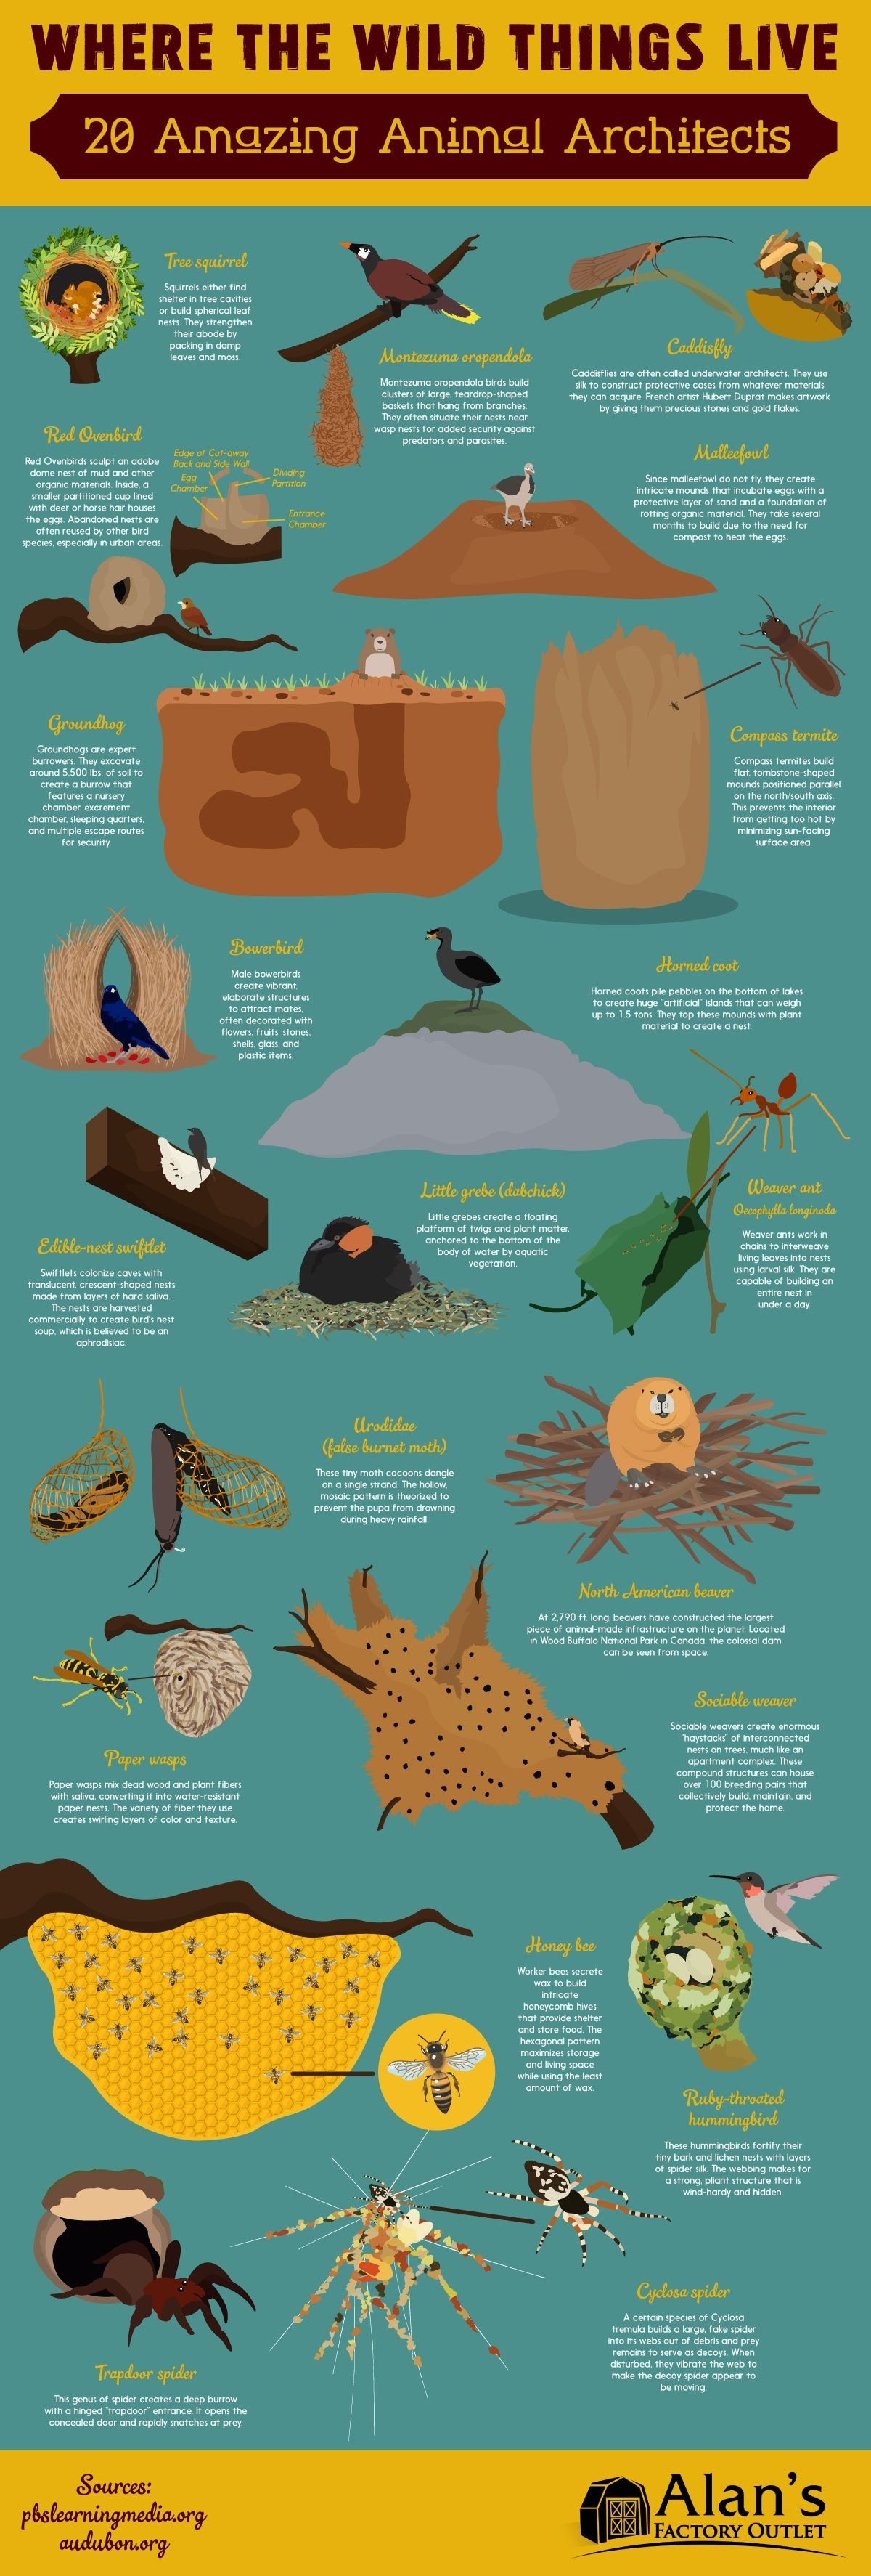 Where the Wild Things Live: 20 Amazing Animal Architects #Infographic